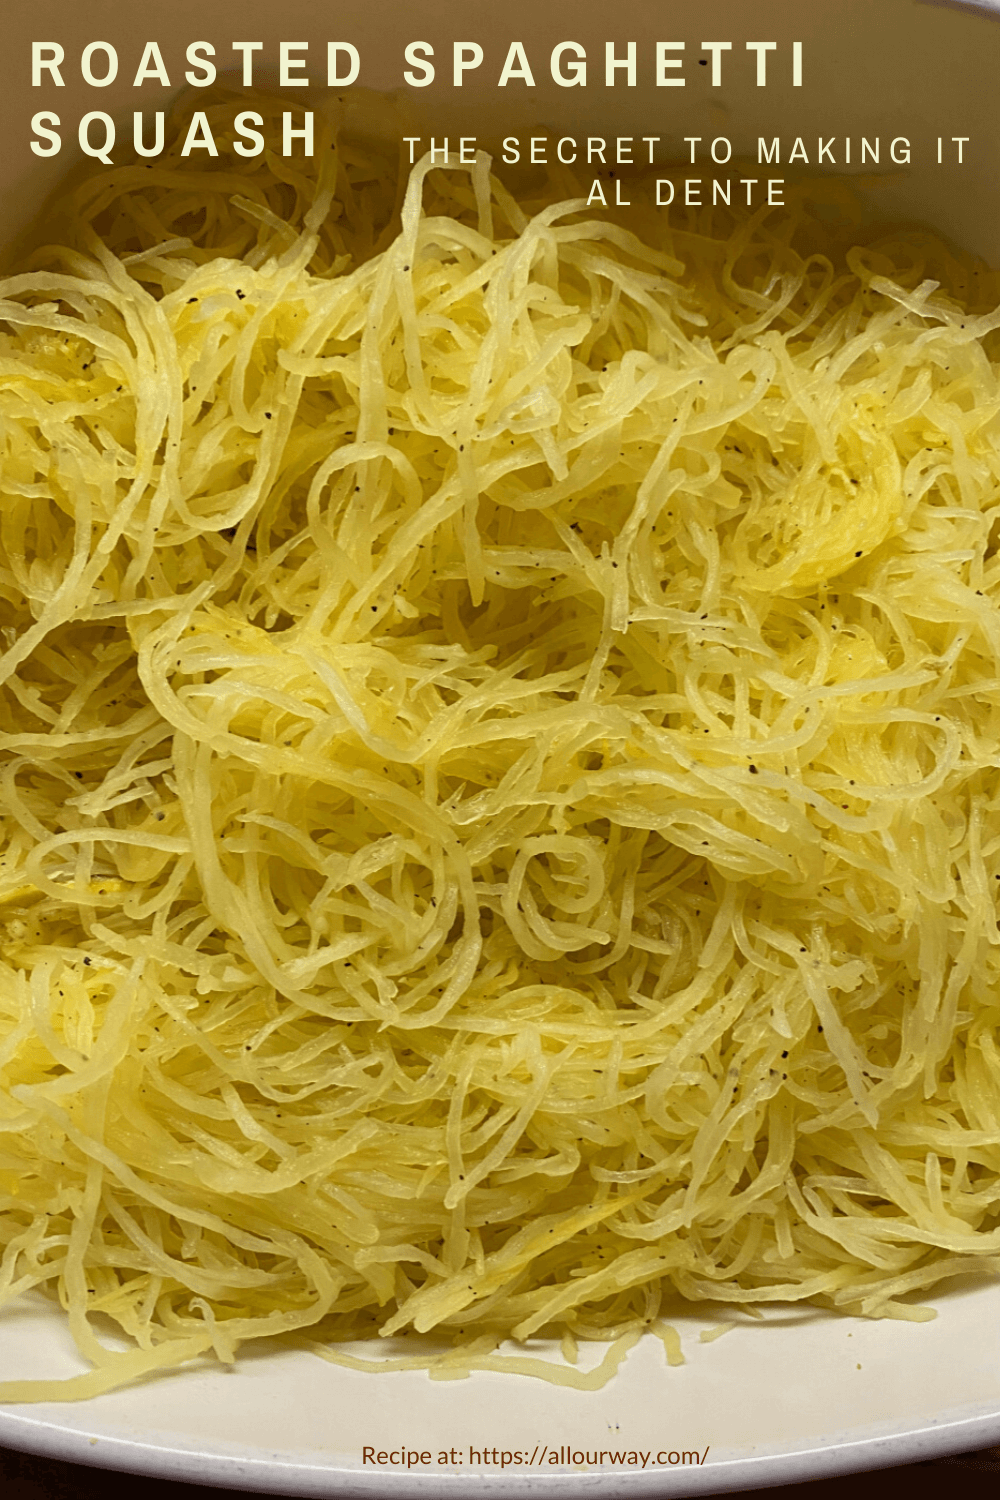 You can make spaghetti squash al dente. It's a matter of letting the squash release some of its liquid and then roasting with the right seasoning. Eat the squash as is or use it in your favorite pasta dishes.